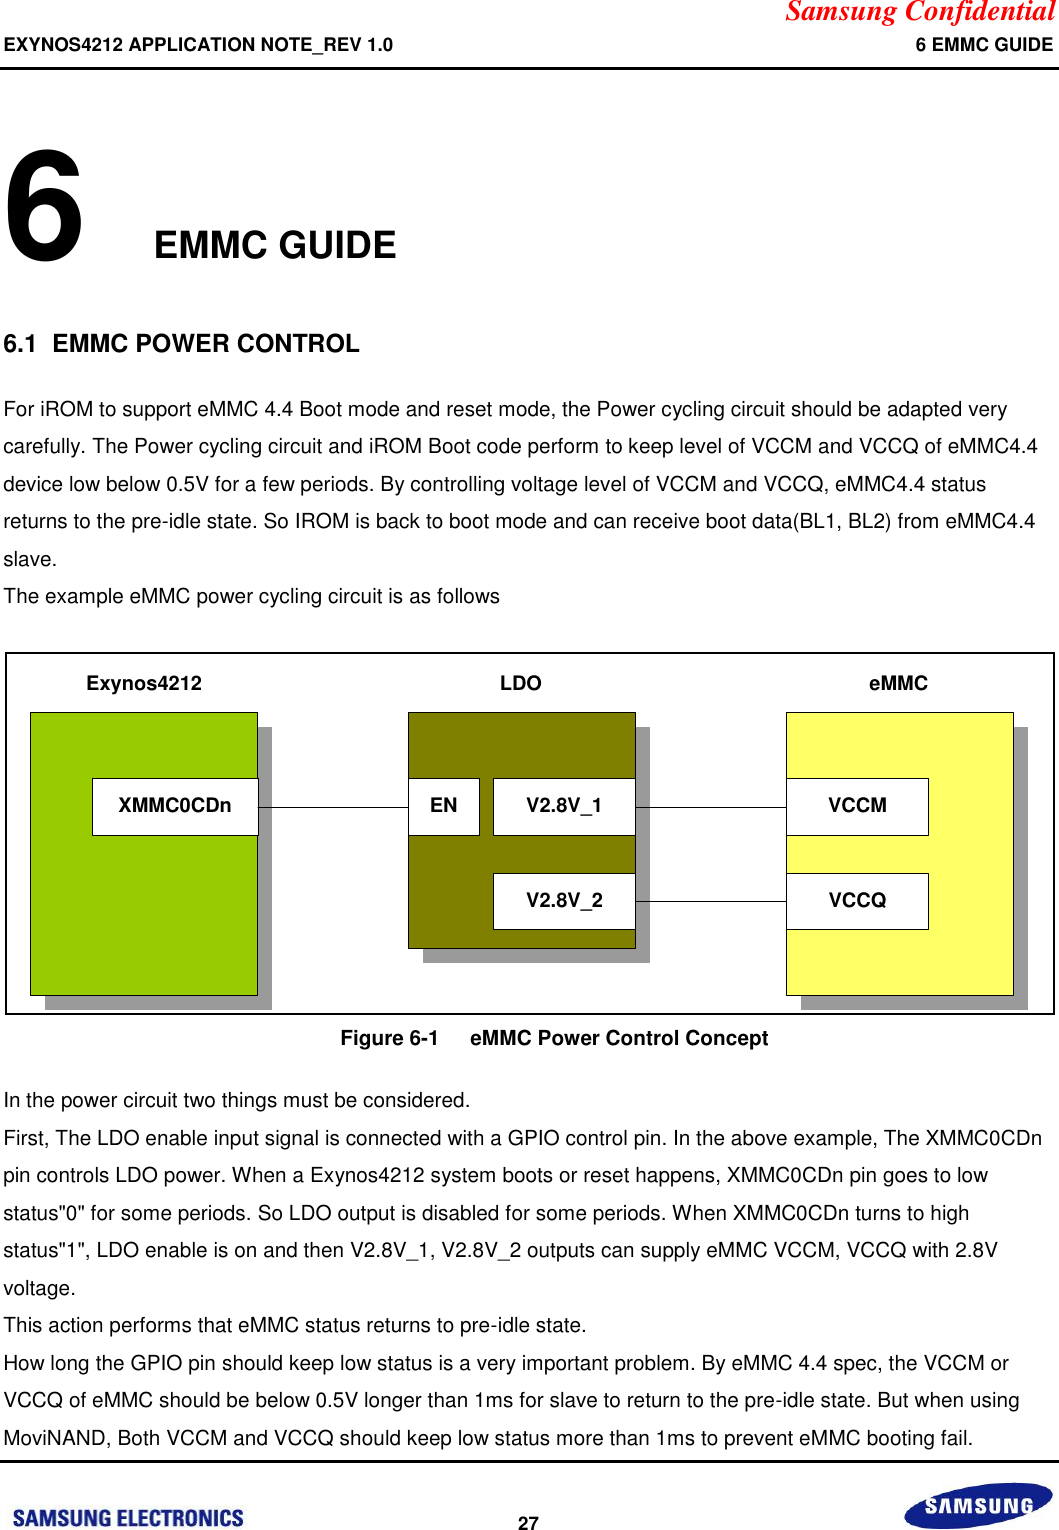 Application Note Android Exynos4412 I ROM Secure Booting Guide Ver